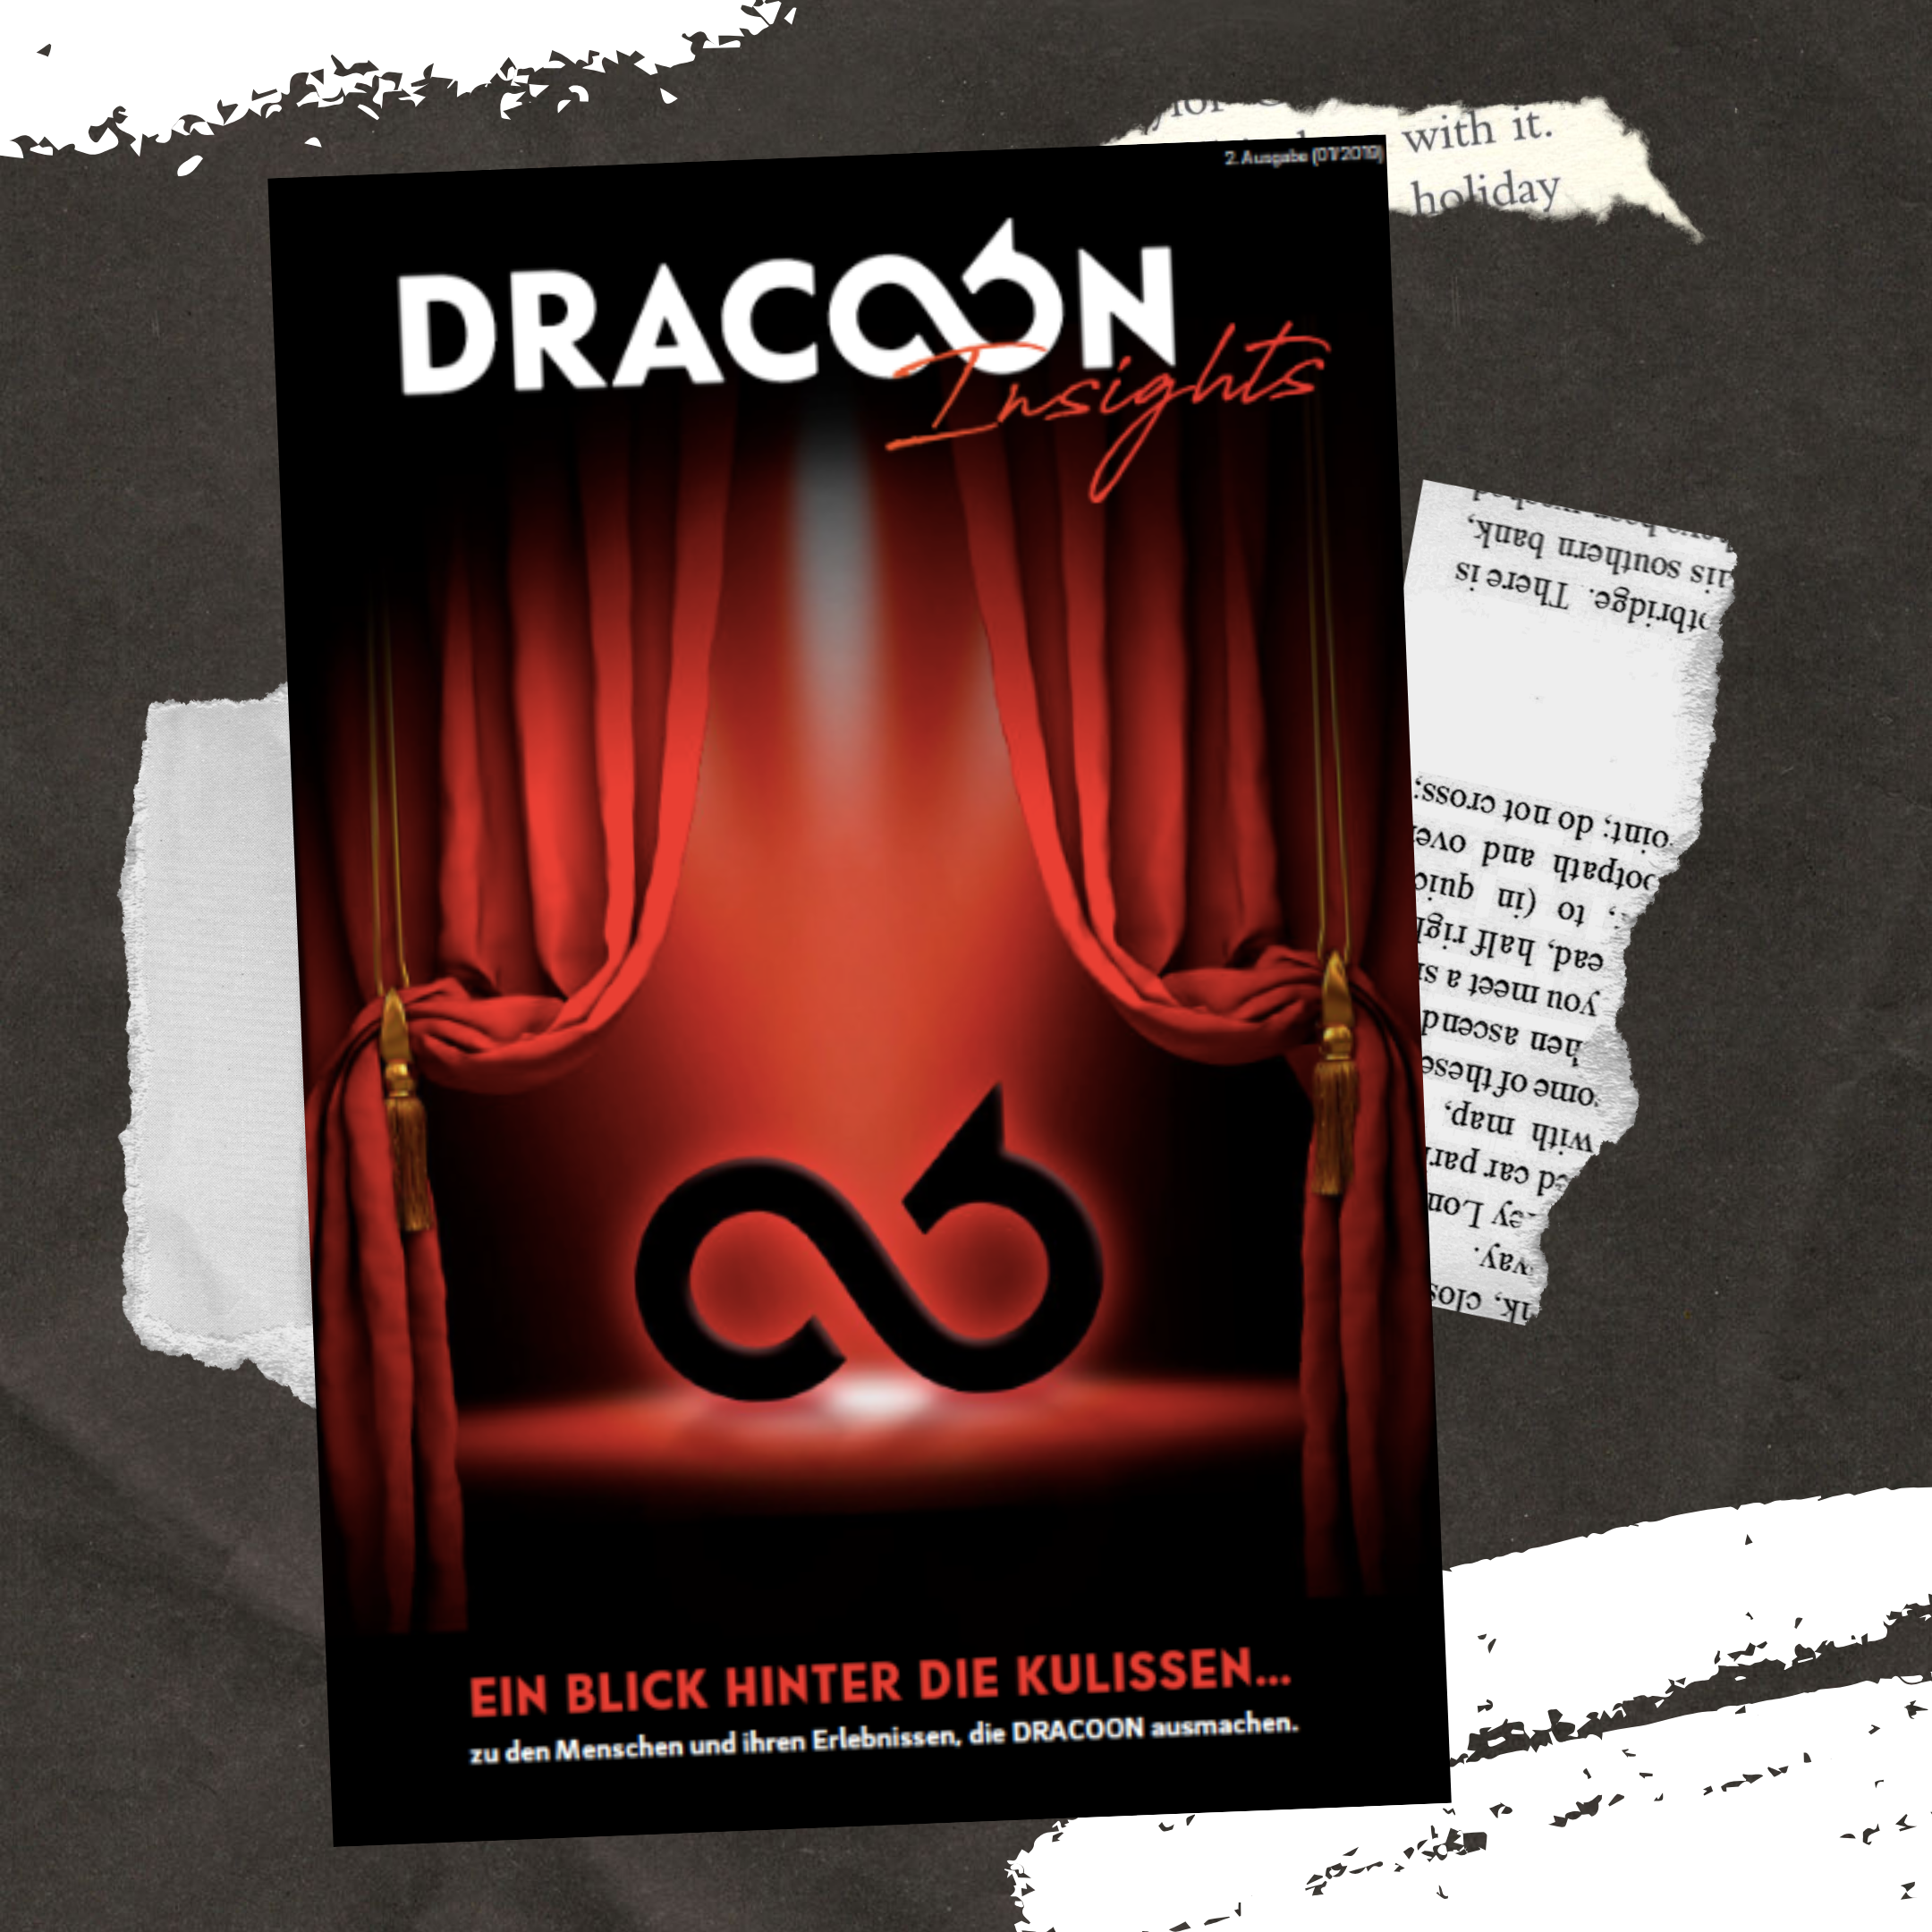 Welcome to the second issue of our magazine DRACOON Insights